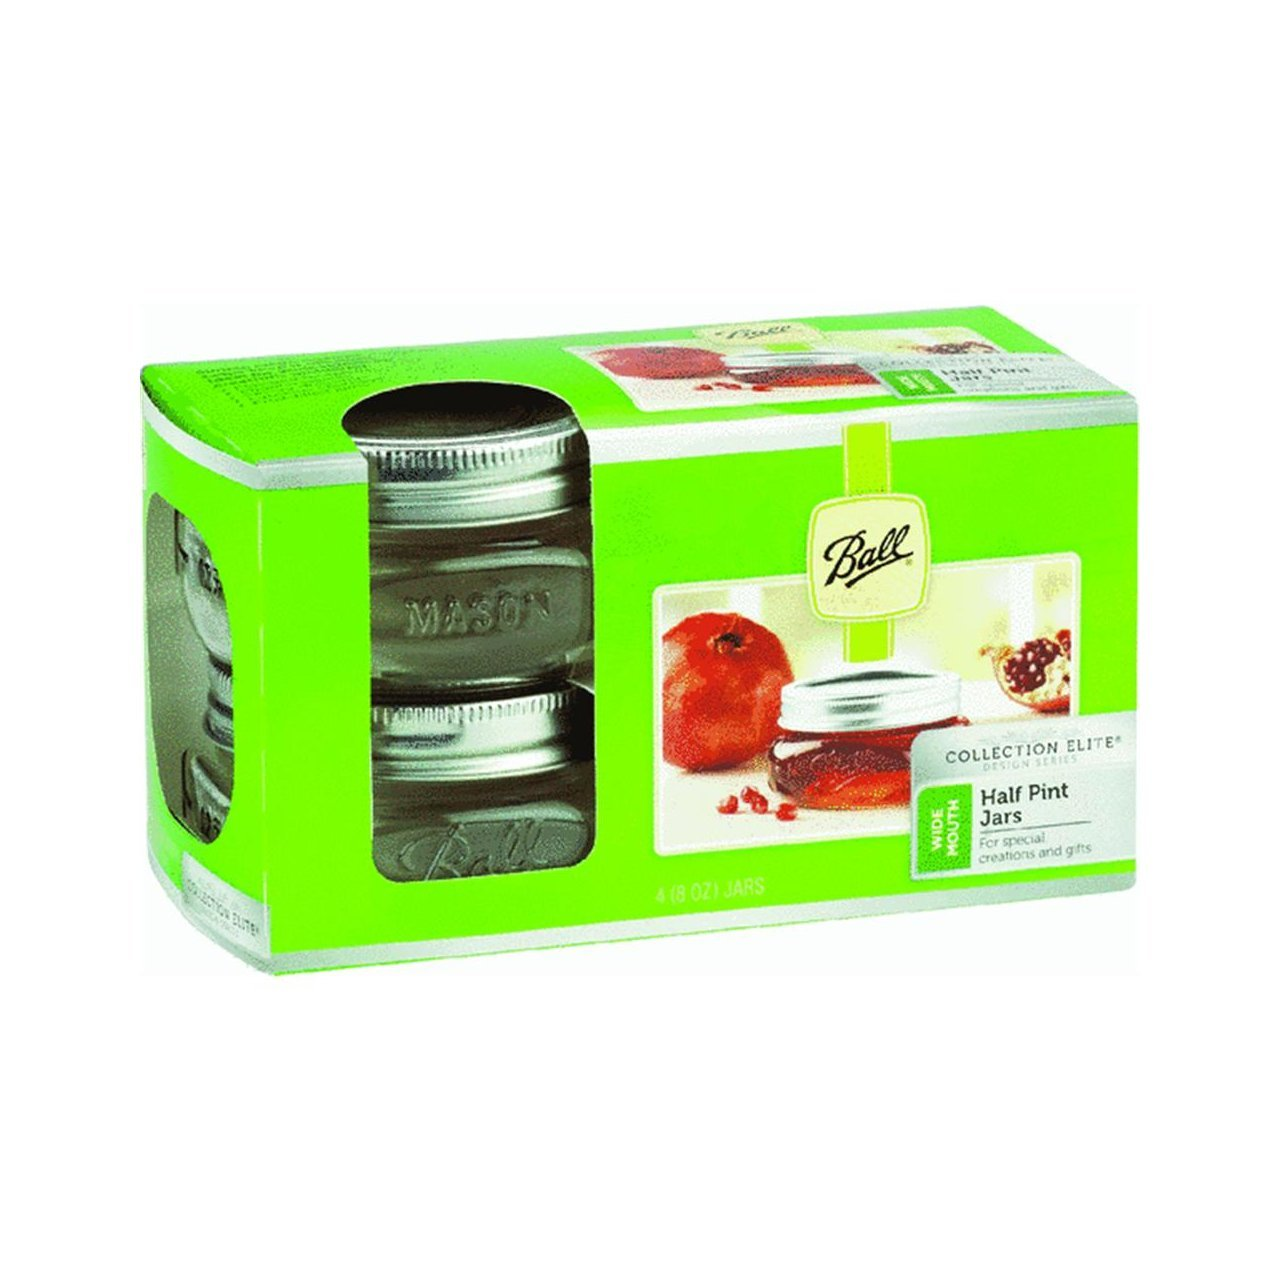 61162 Wide Mouth Canning Jar, 4-Pack, Great in the kitchen for canning and storing foods, they are also great... by